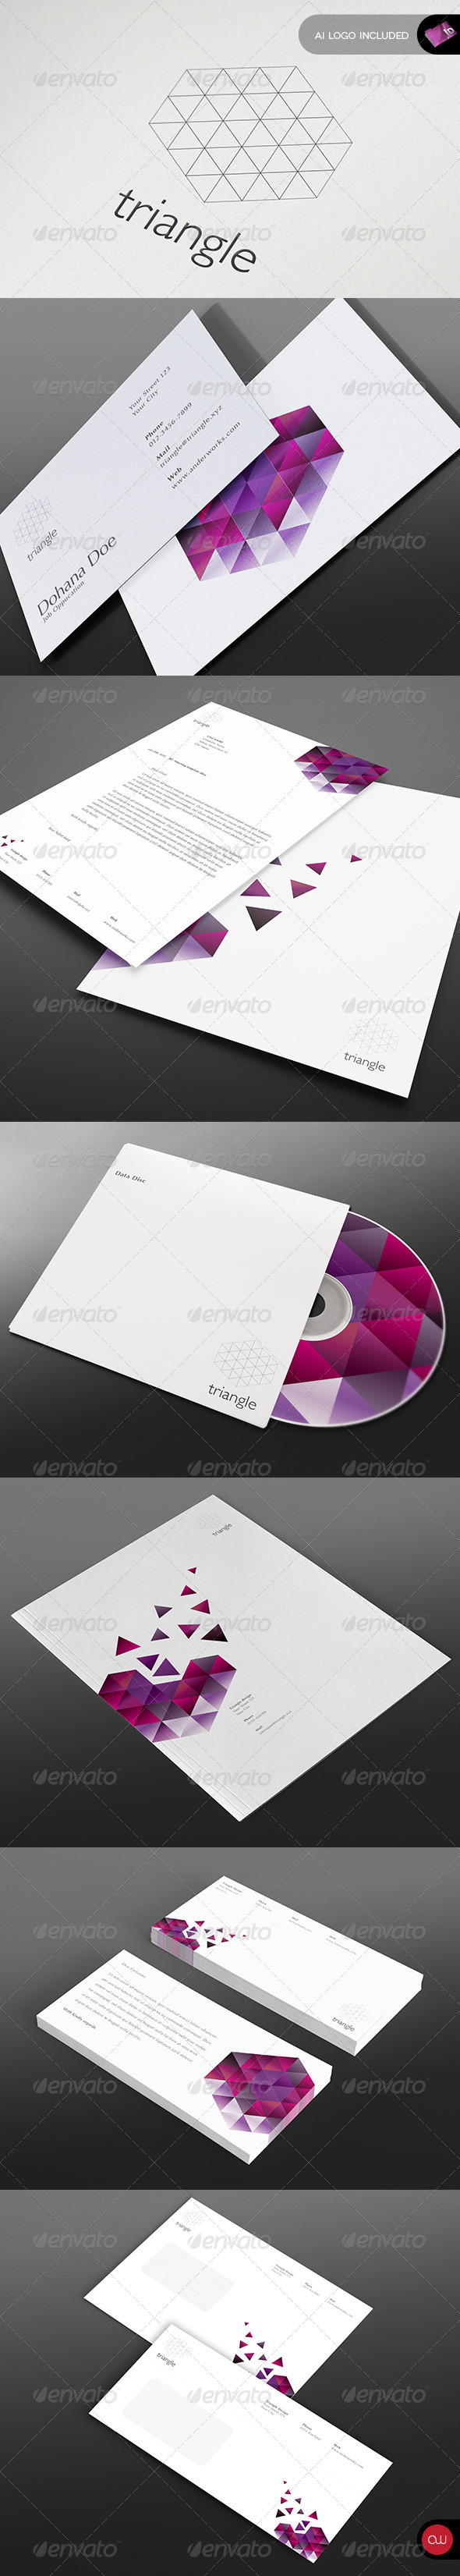 Modern Stationary Template - Vol.12 - Stationery Print Templates